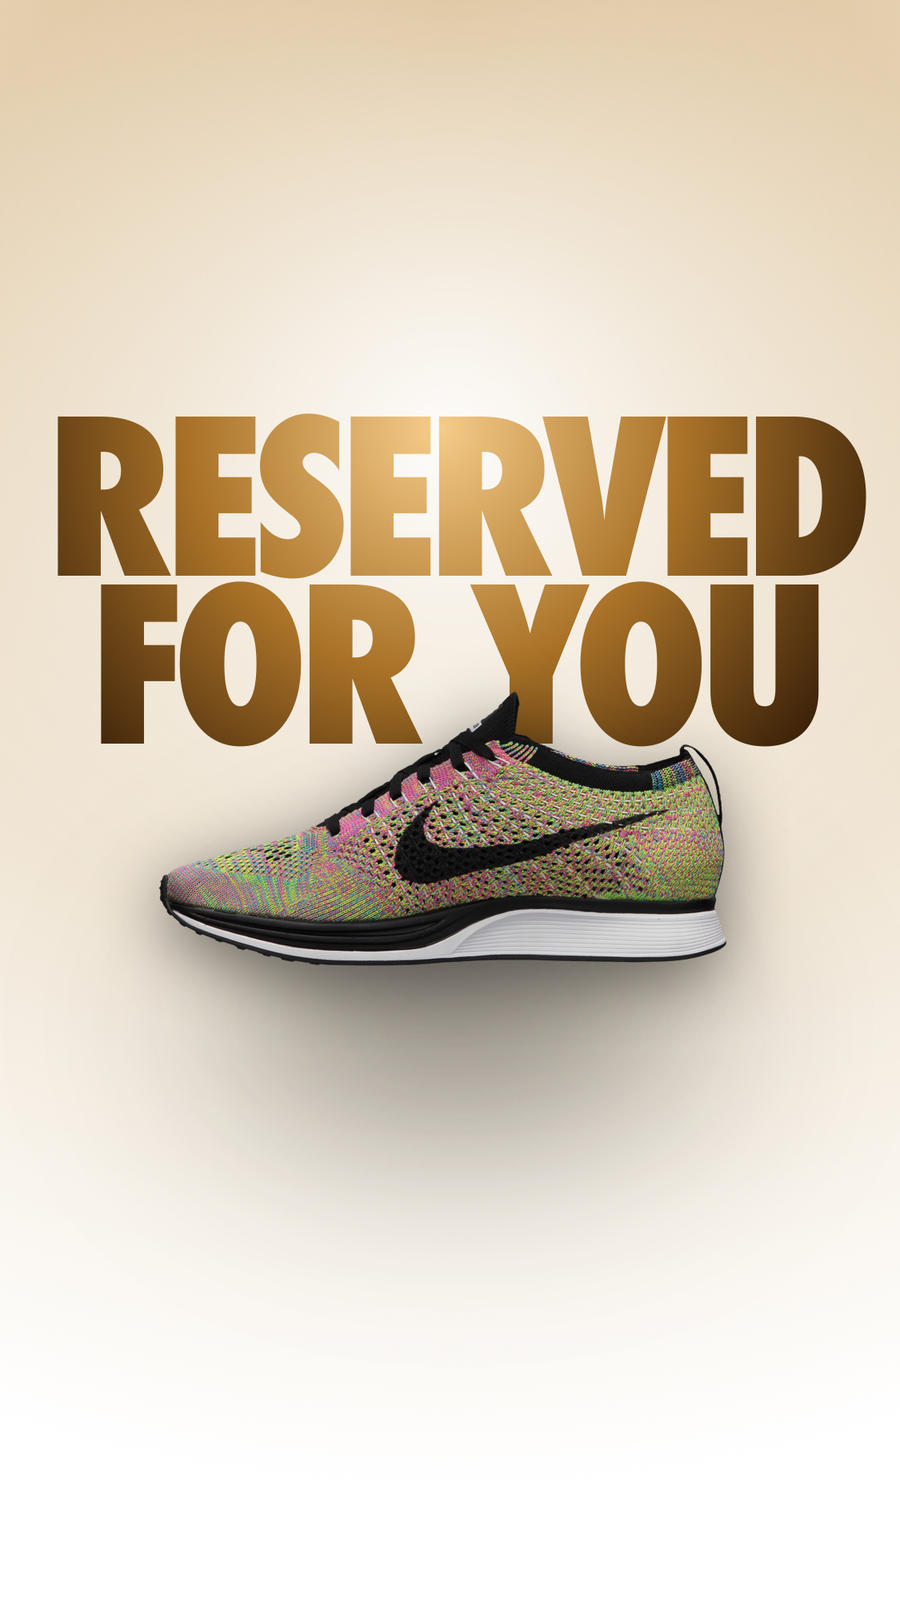 Nike+ app Reserved for You Invitation